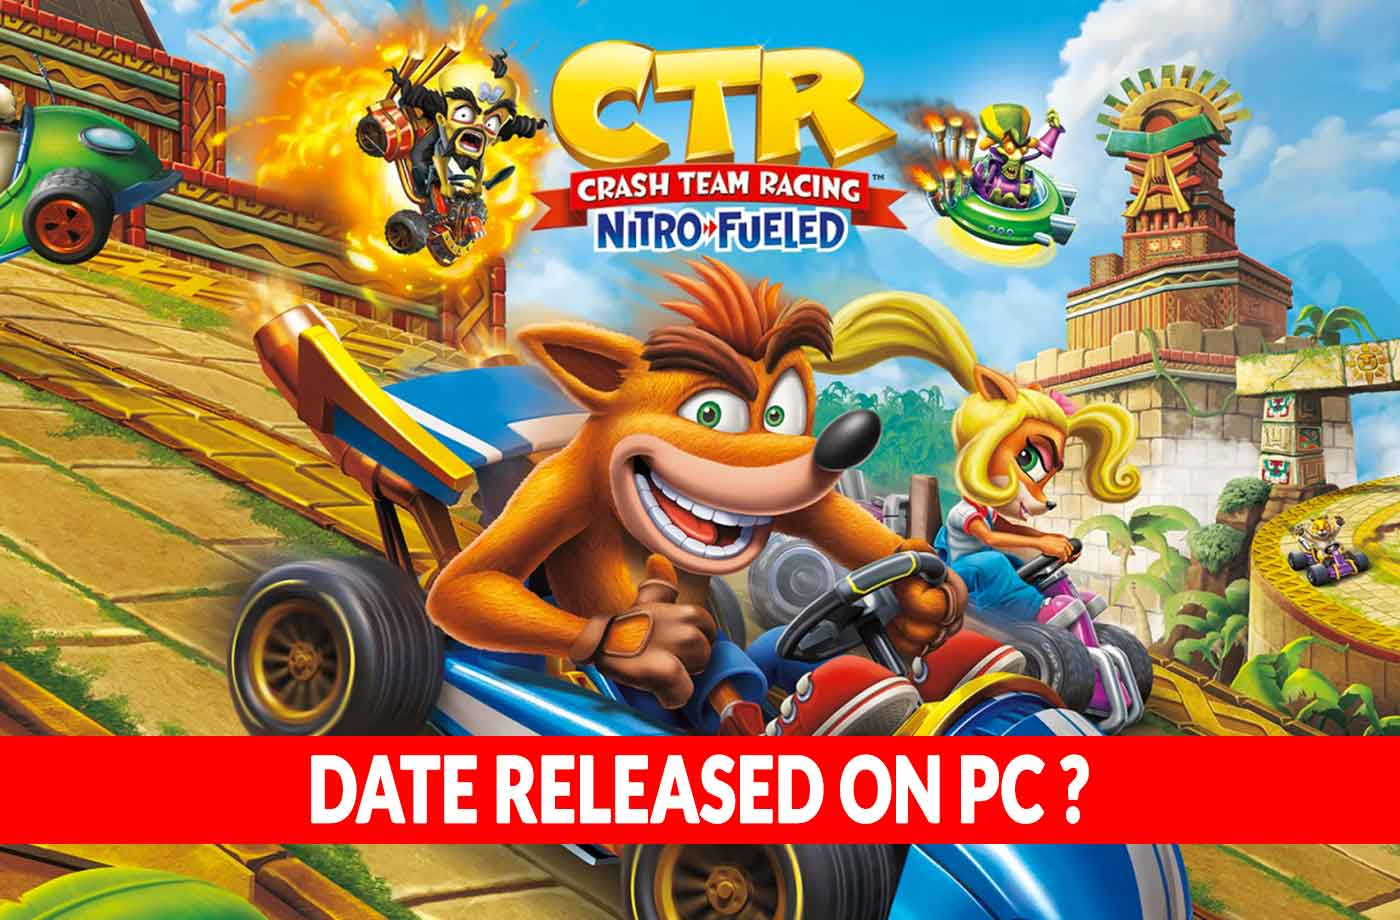 Why Crash Team Racing Nitro-Fueled is not released on PC | kill-the